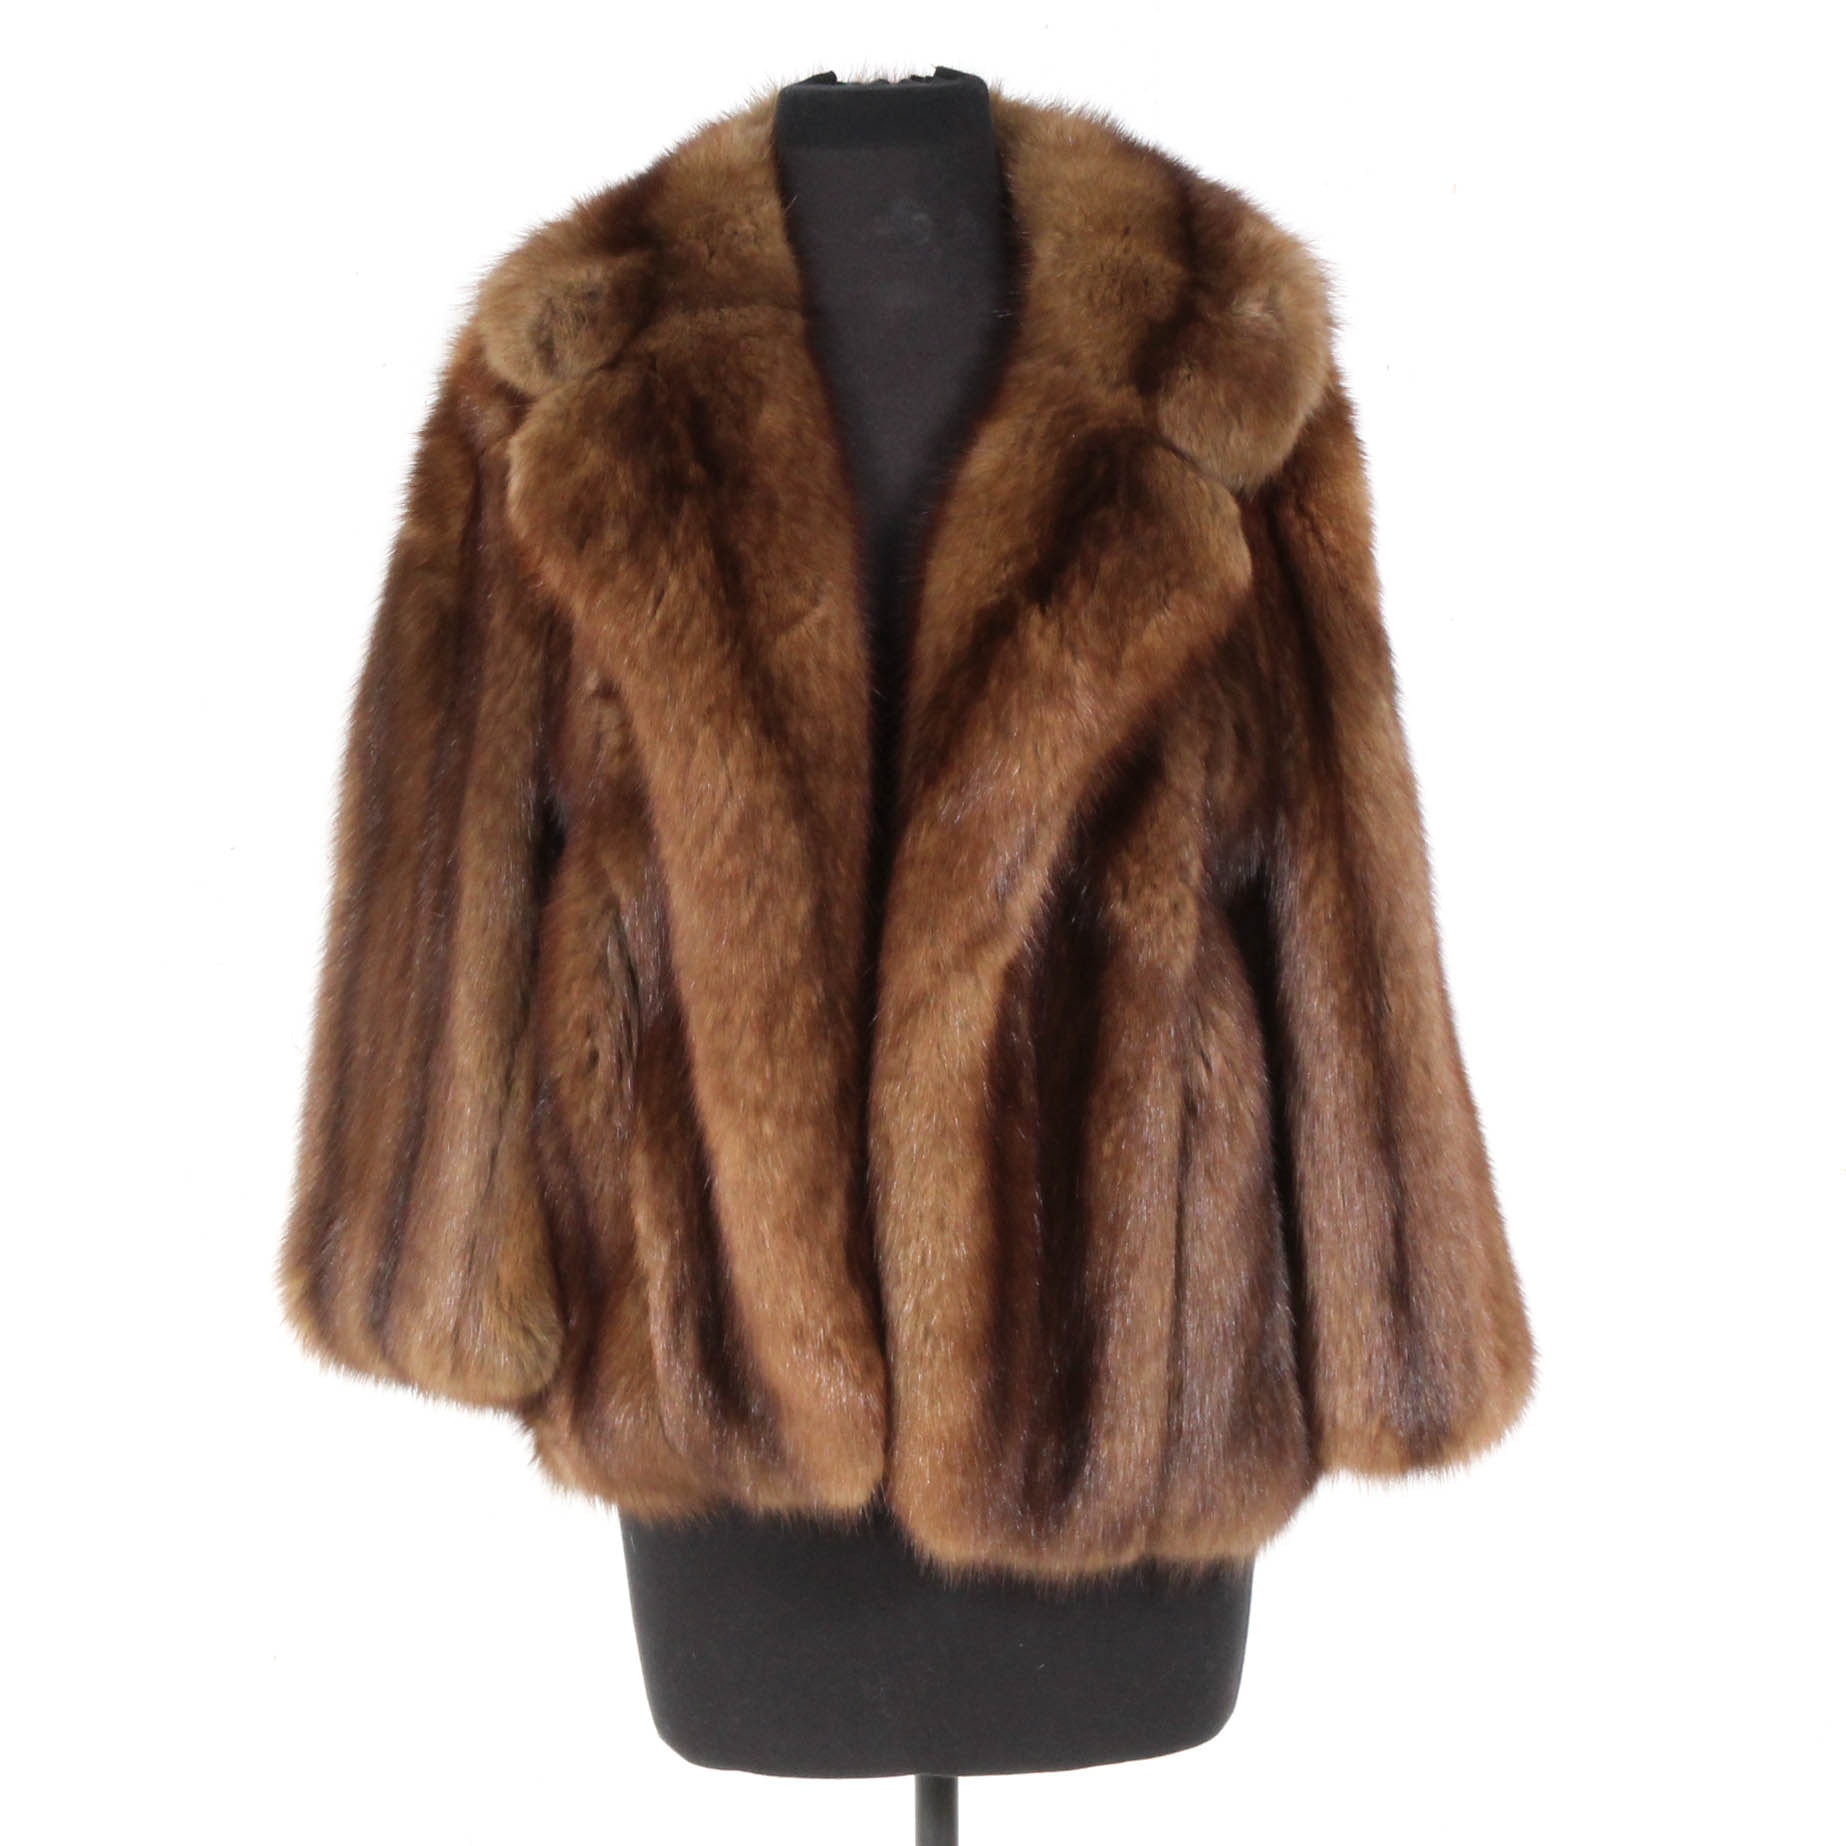 Vintage Sable Fur Jacket